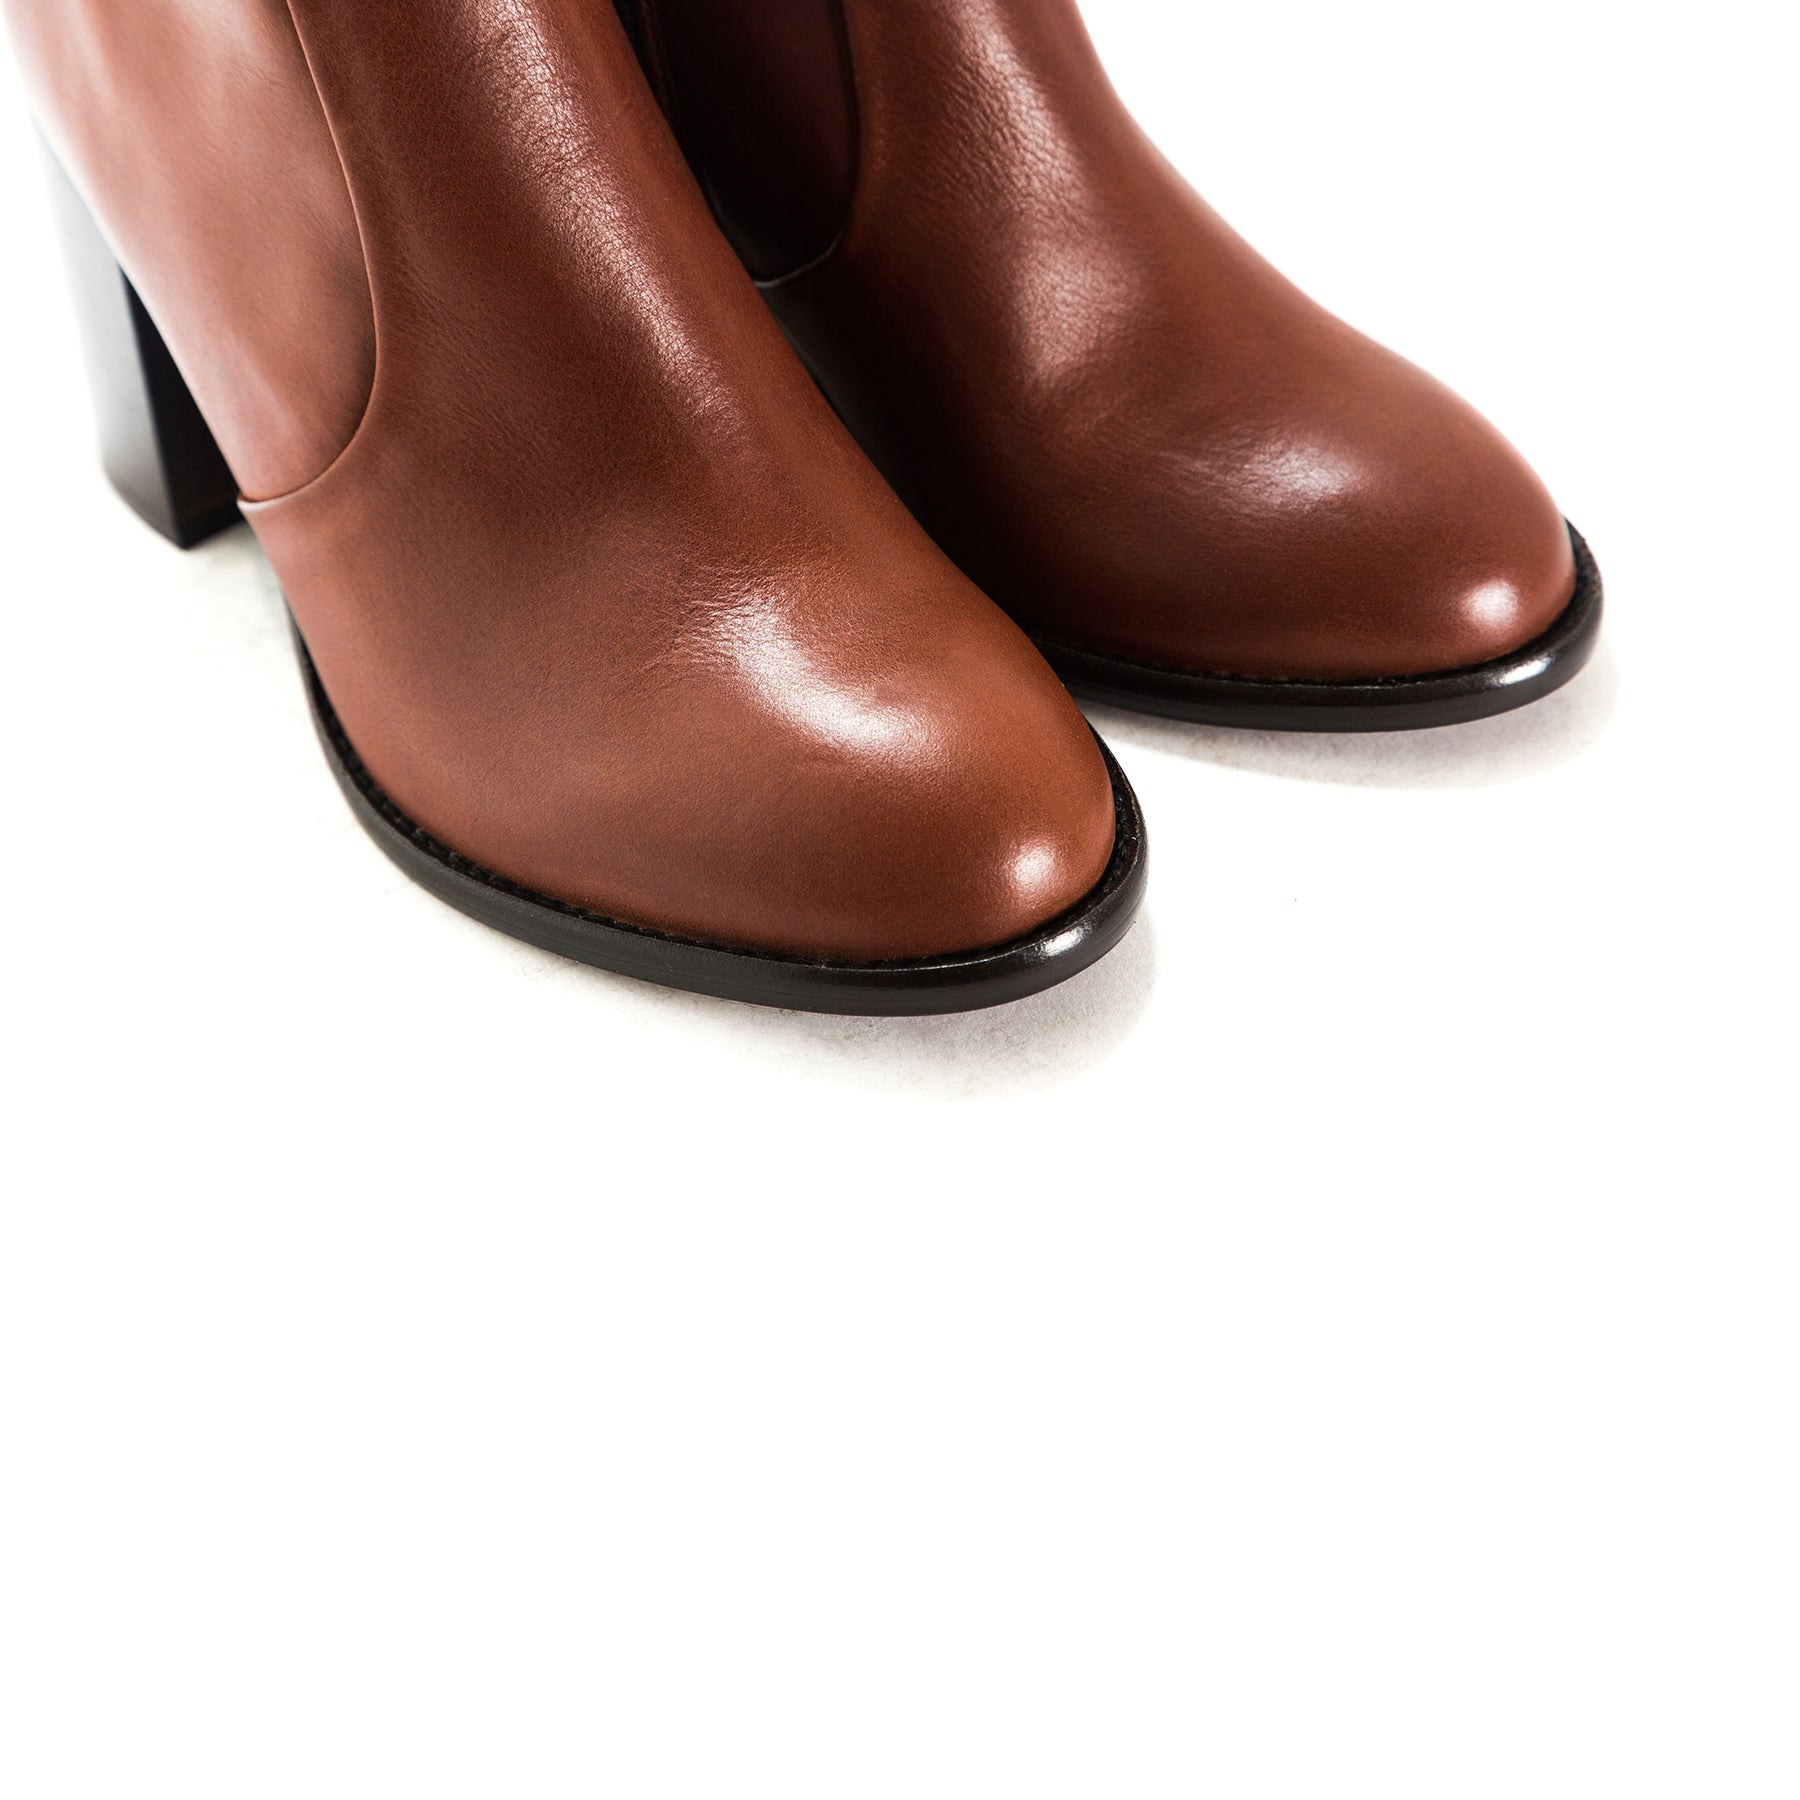 Charlston Tan Leather Boots